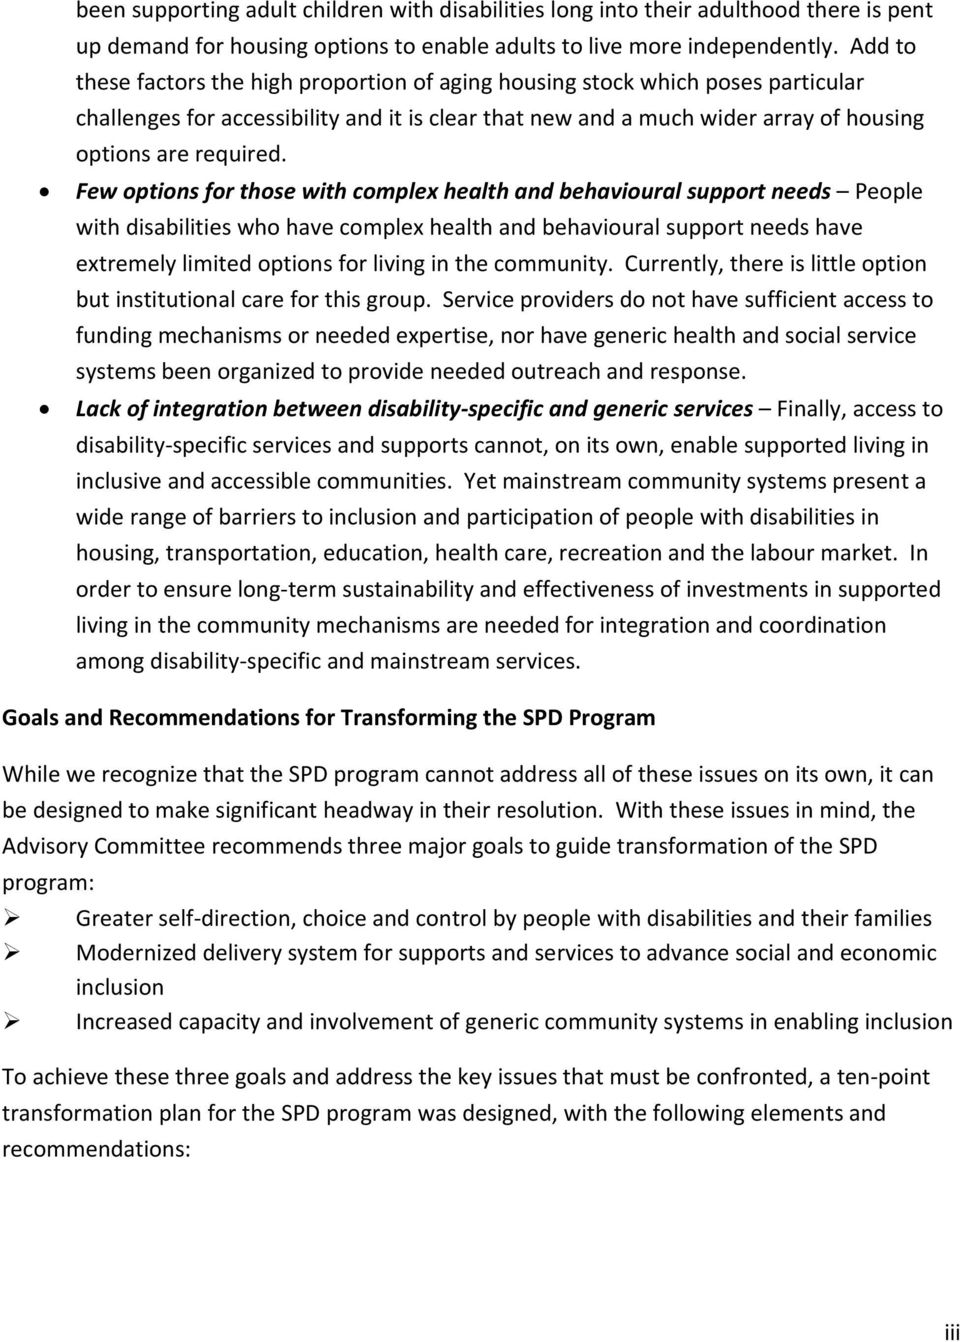 Few options for those with complex health and behavioural support needs People with disabilities who have complex health and behavioural support needs have extremely limited options for living in the